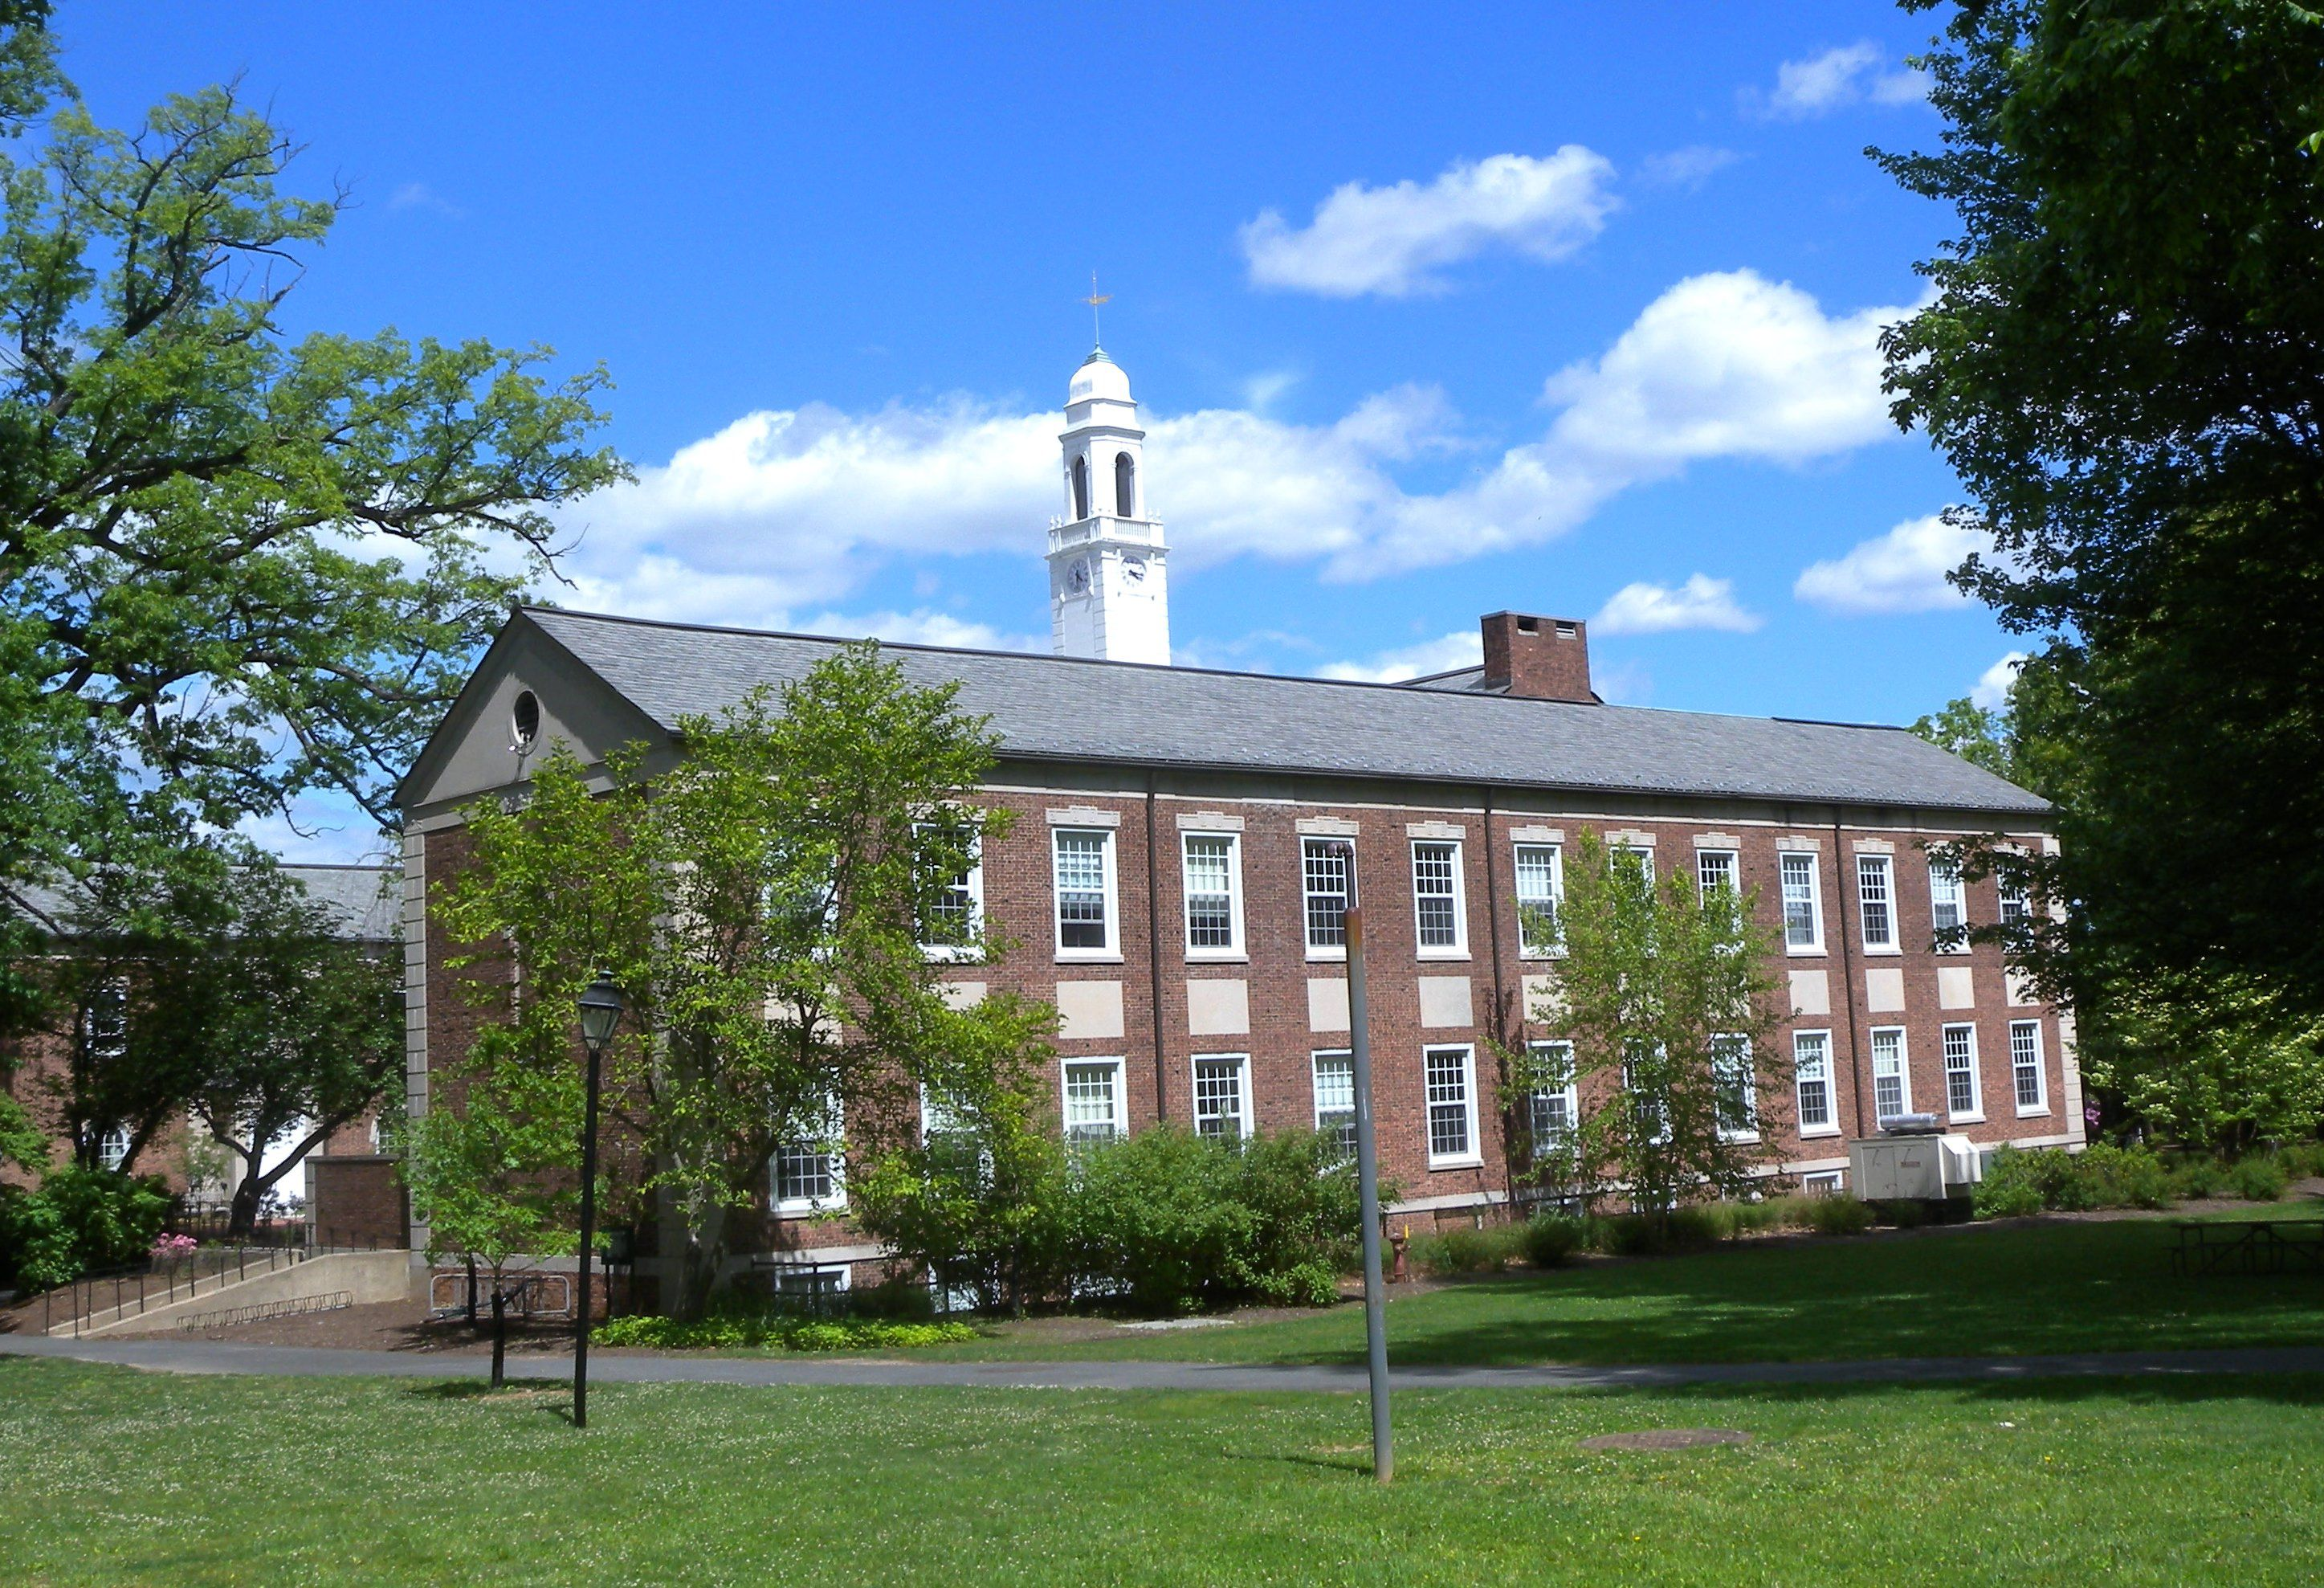 Brothers College at Drew University